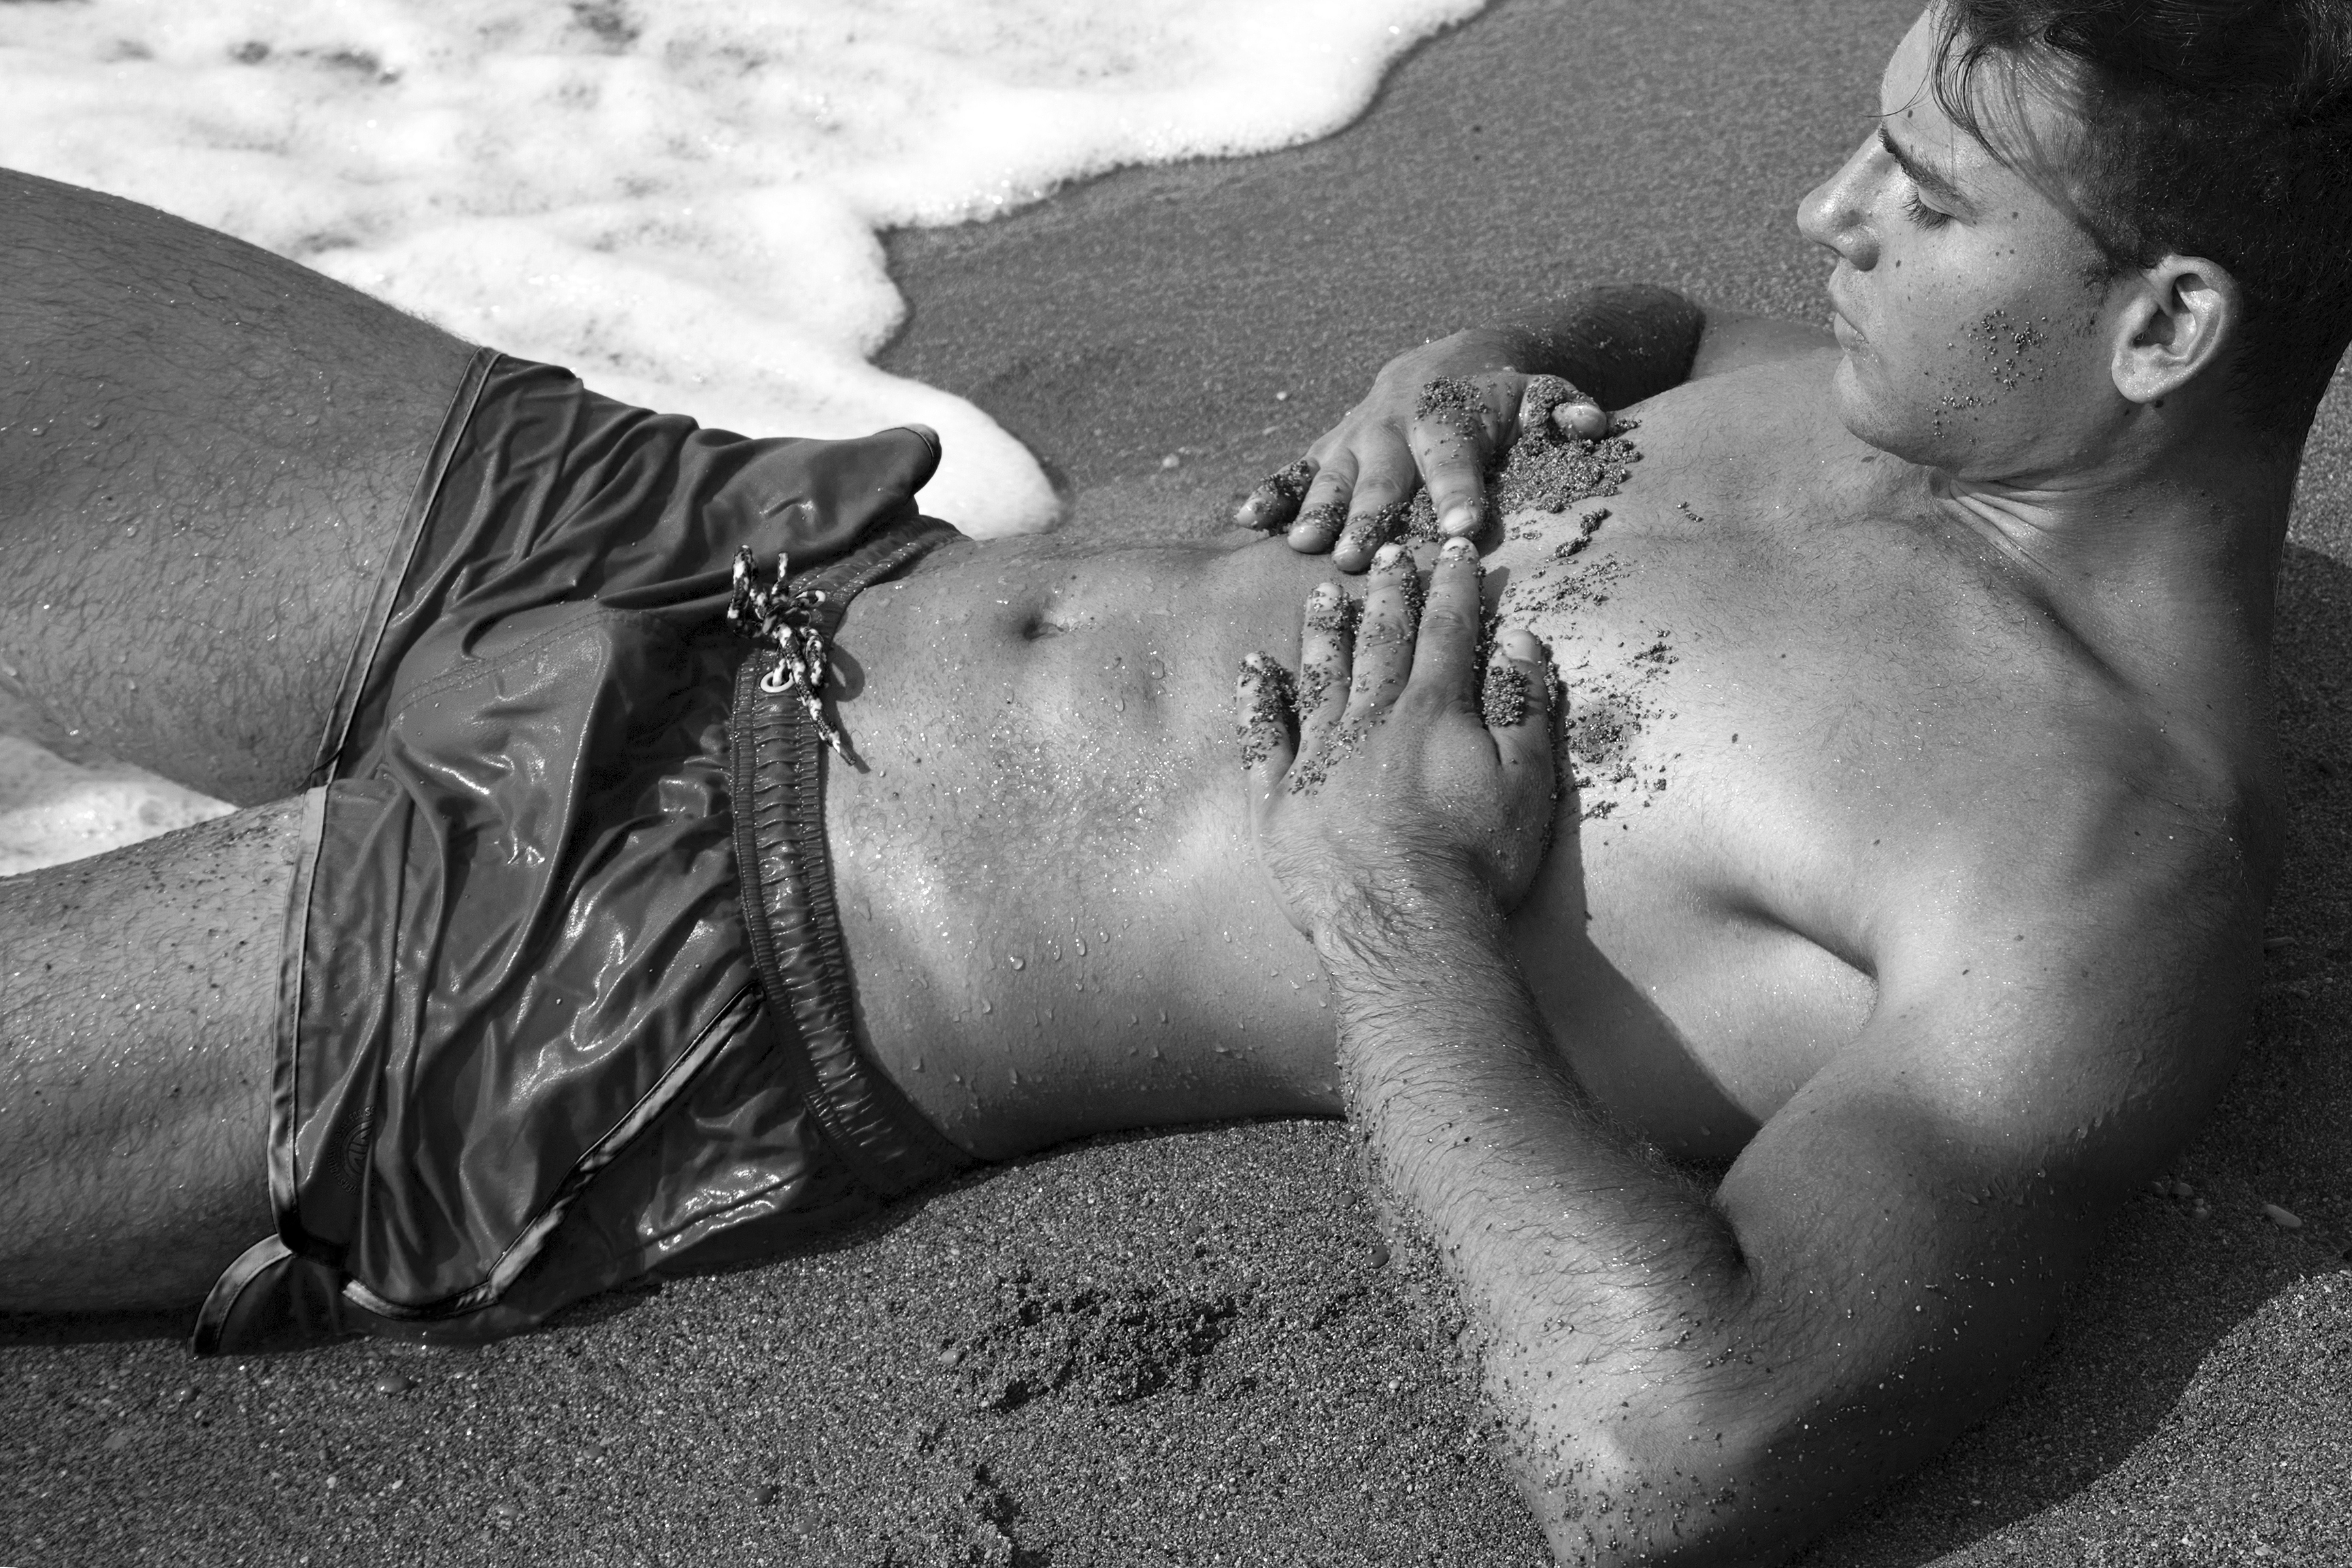 A beautiful beach set with Spanish male model Natán de Segovia showing off candid fit body, swimming in the ocean, connecting to nature, in a sublime photography and video by Jose Martinez.